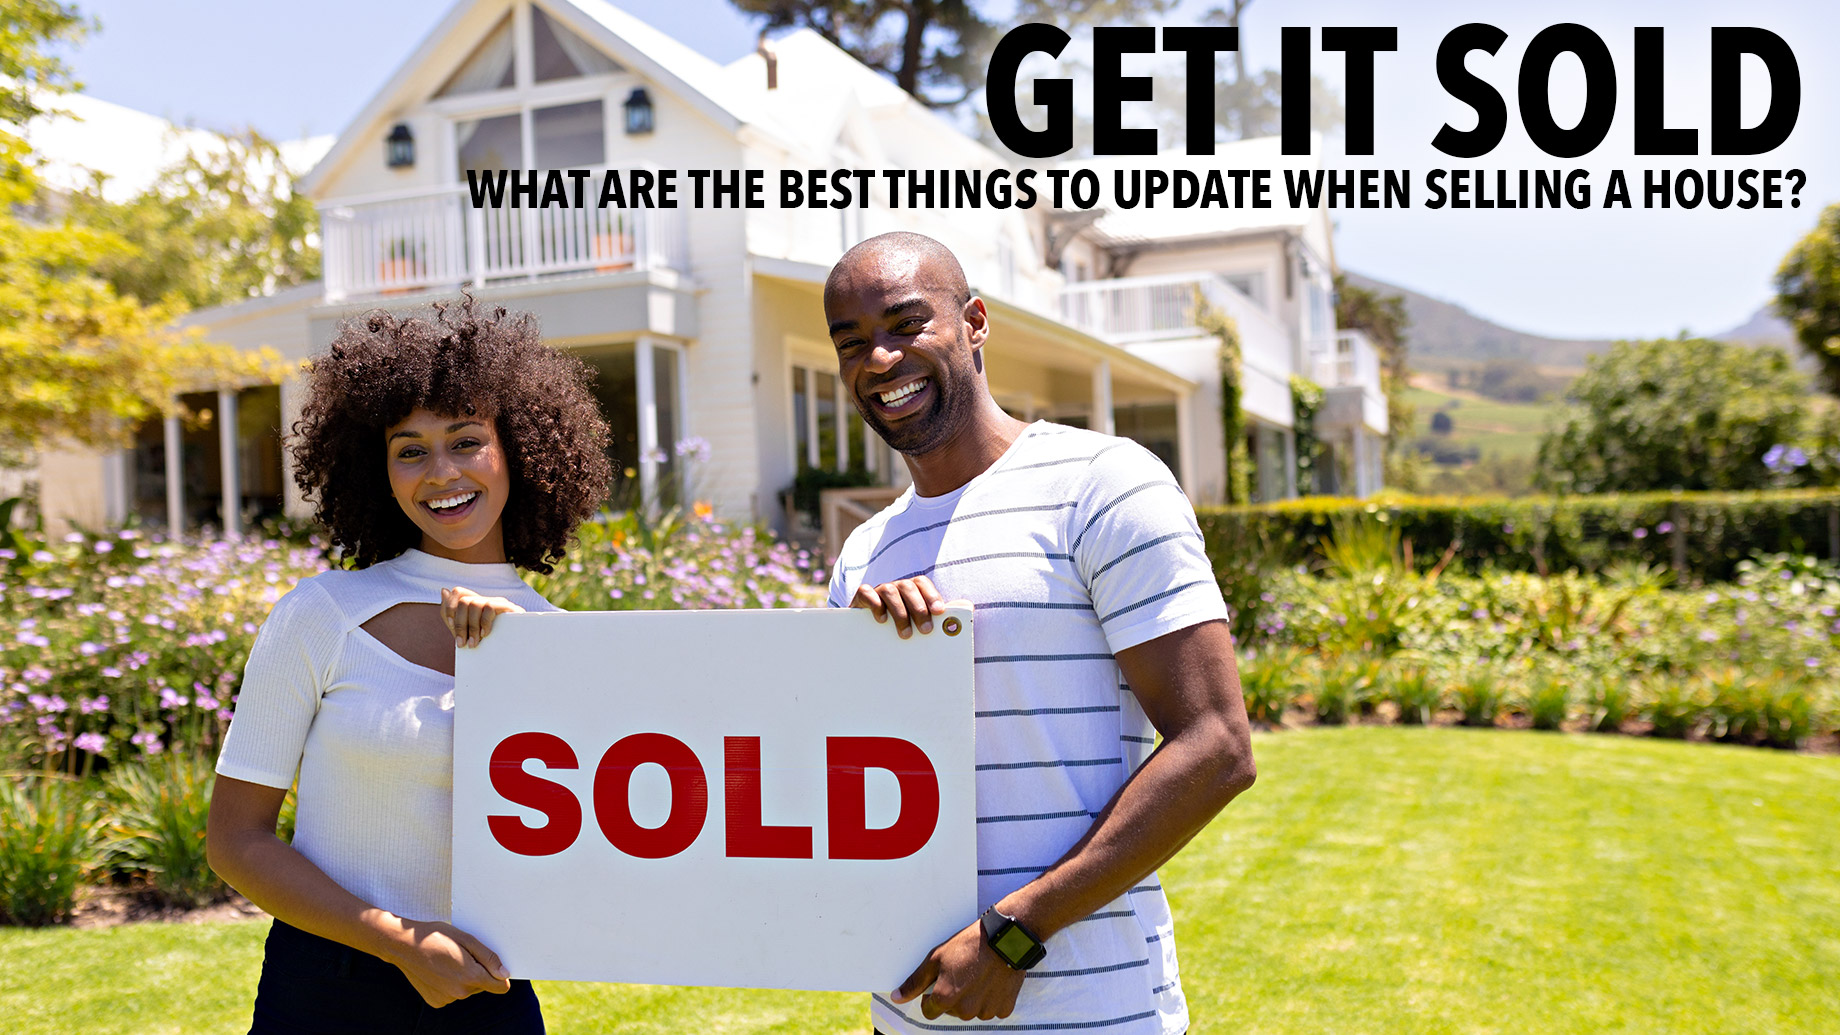 Get It Sold - What Are the Best Things to Update When Selling a House?